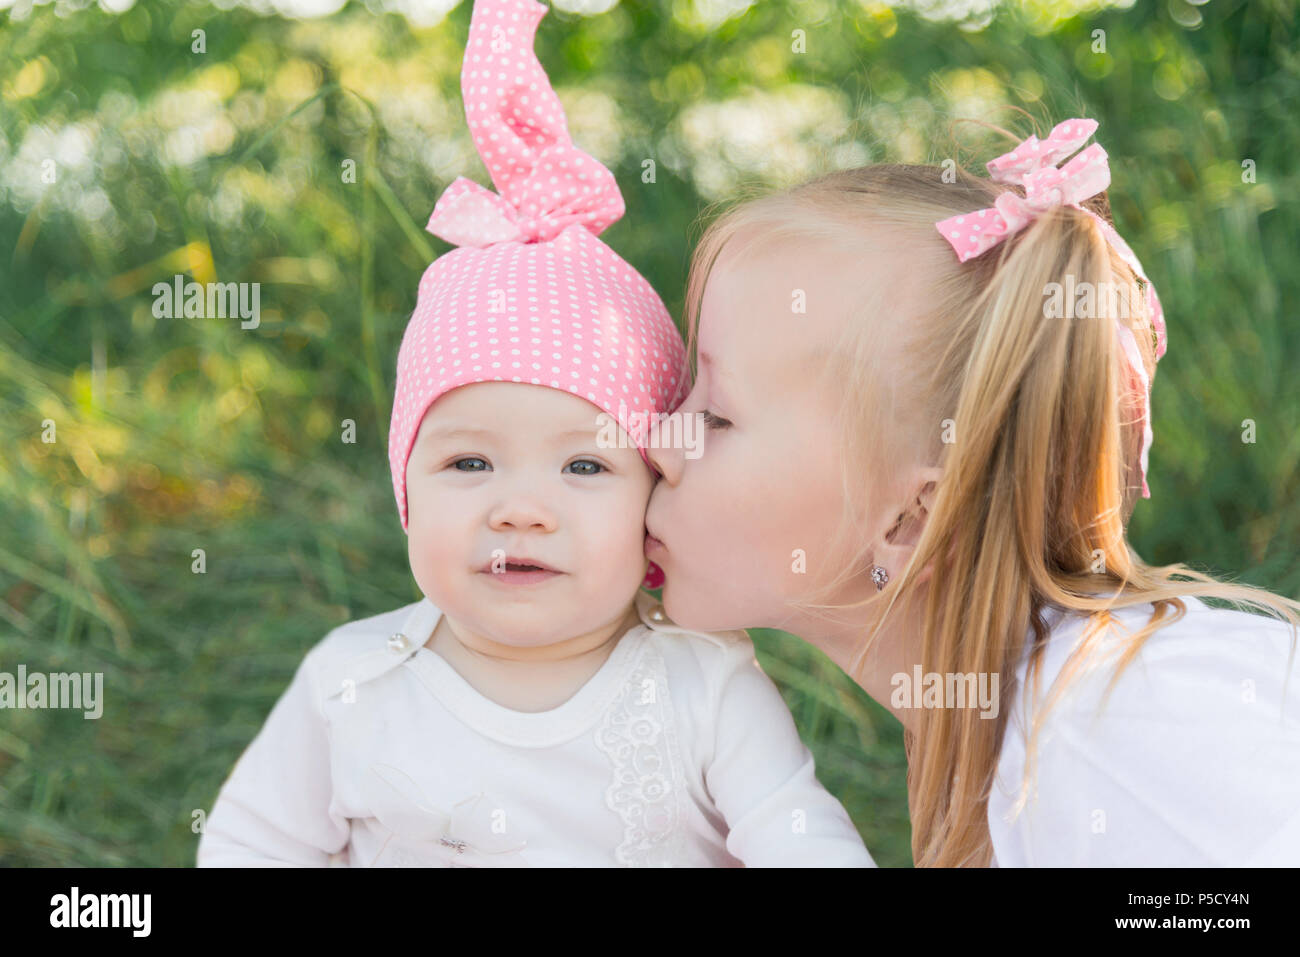 Two sisters. The older sister kisses the younger sister on the cheek. Pink hat in a pea and bows. - Stock Image